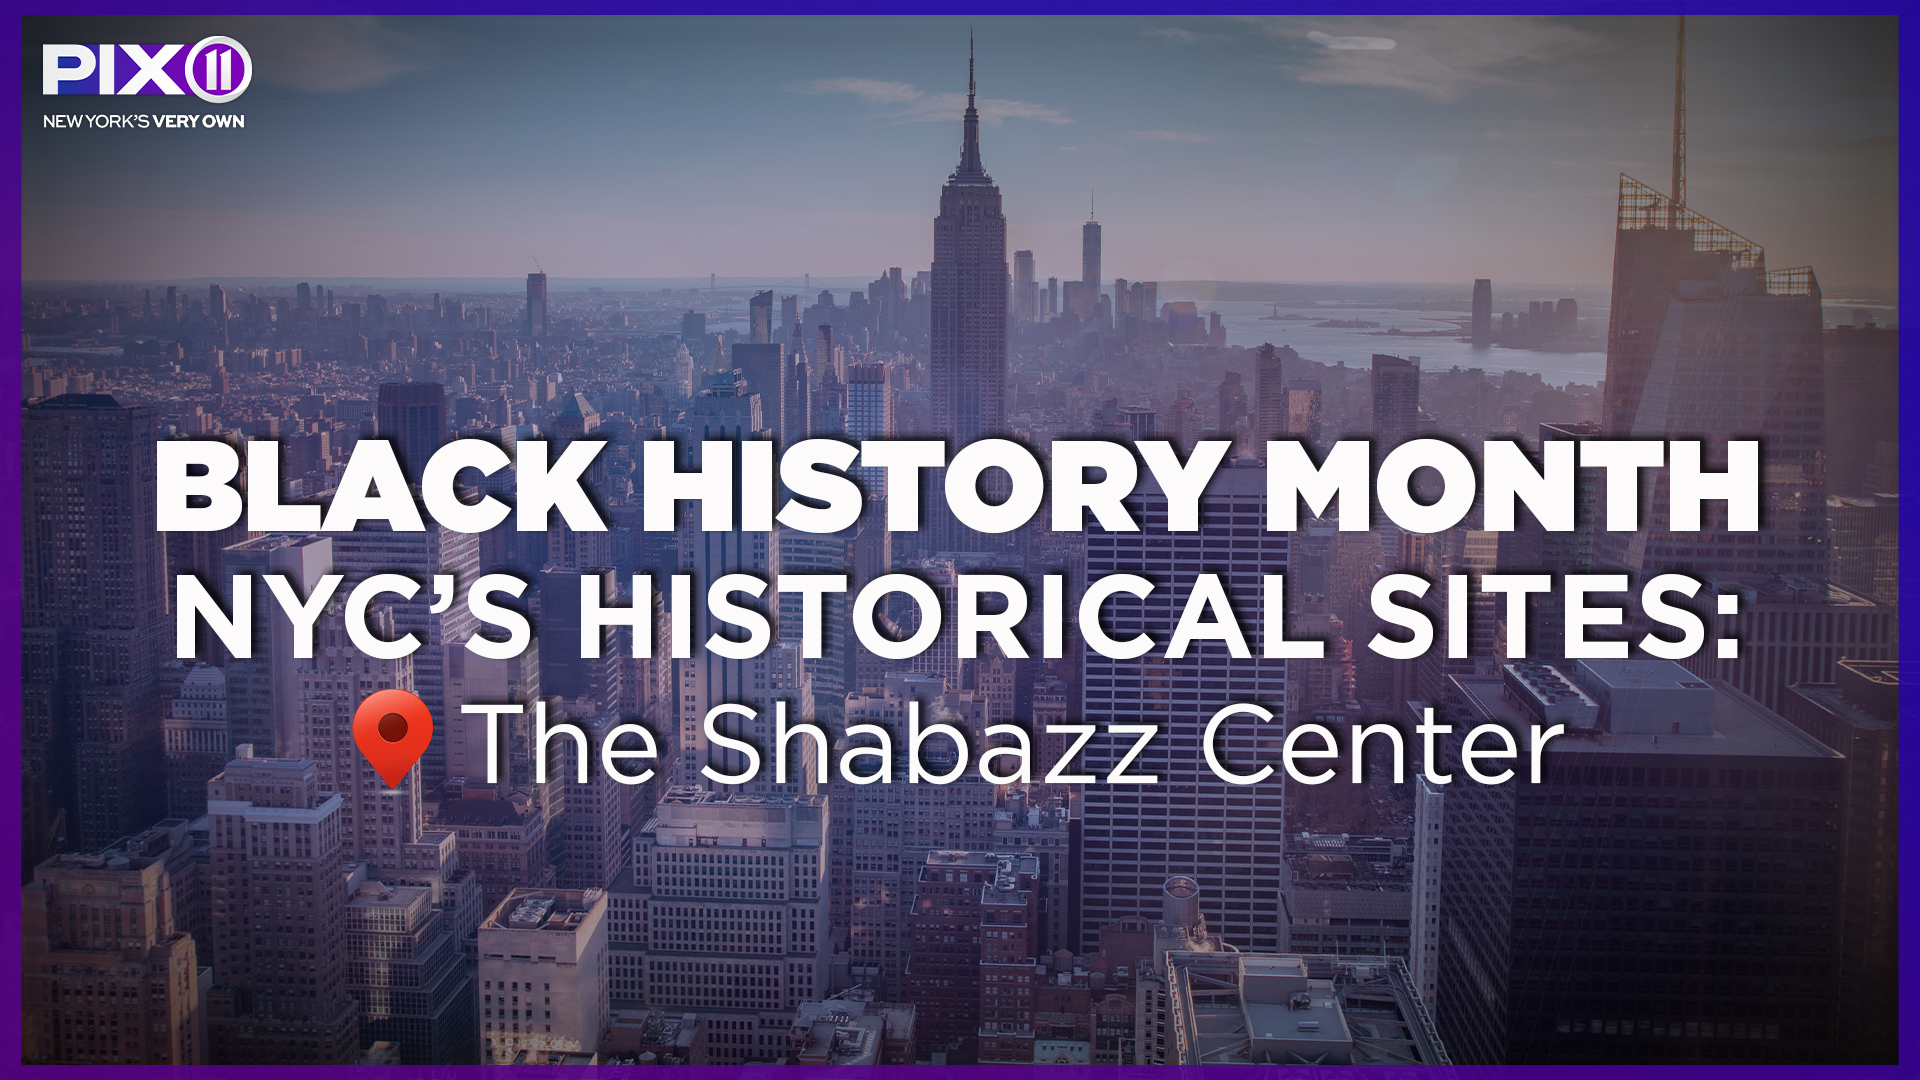 Black History Month NYC historical sites